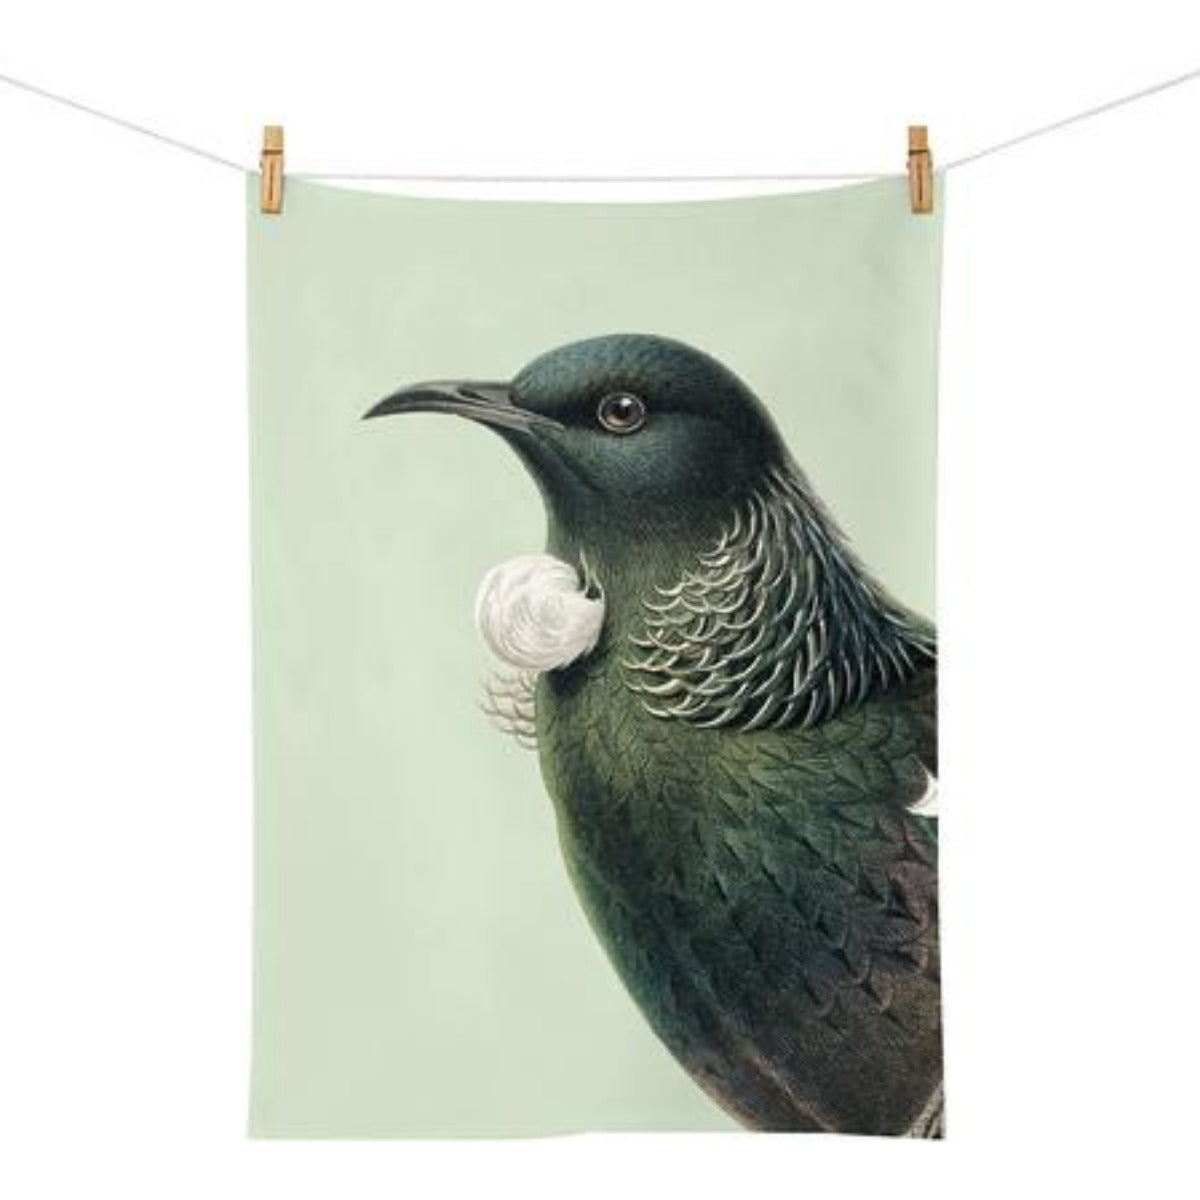 jade kiwi kaikoura gifts cotton tea towel native bird tui